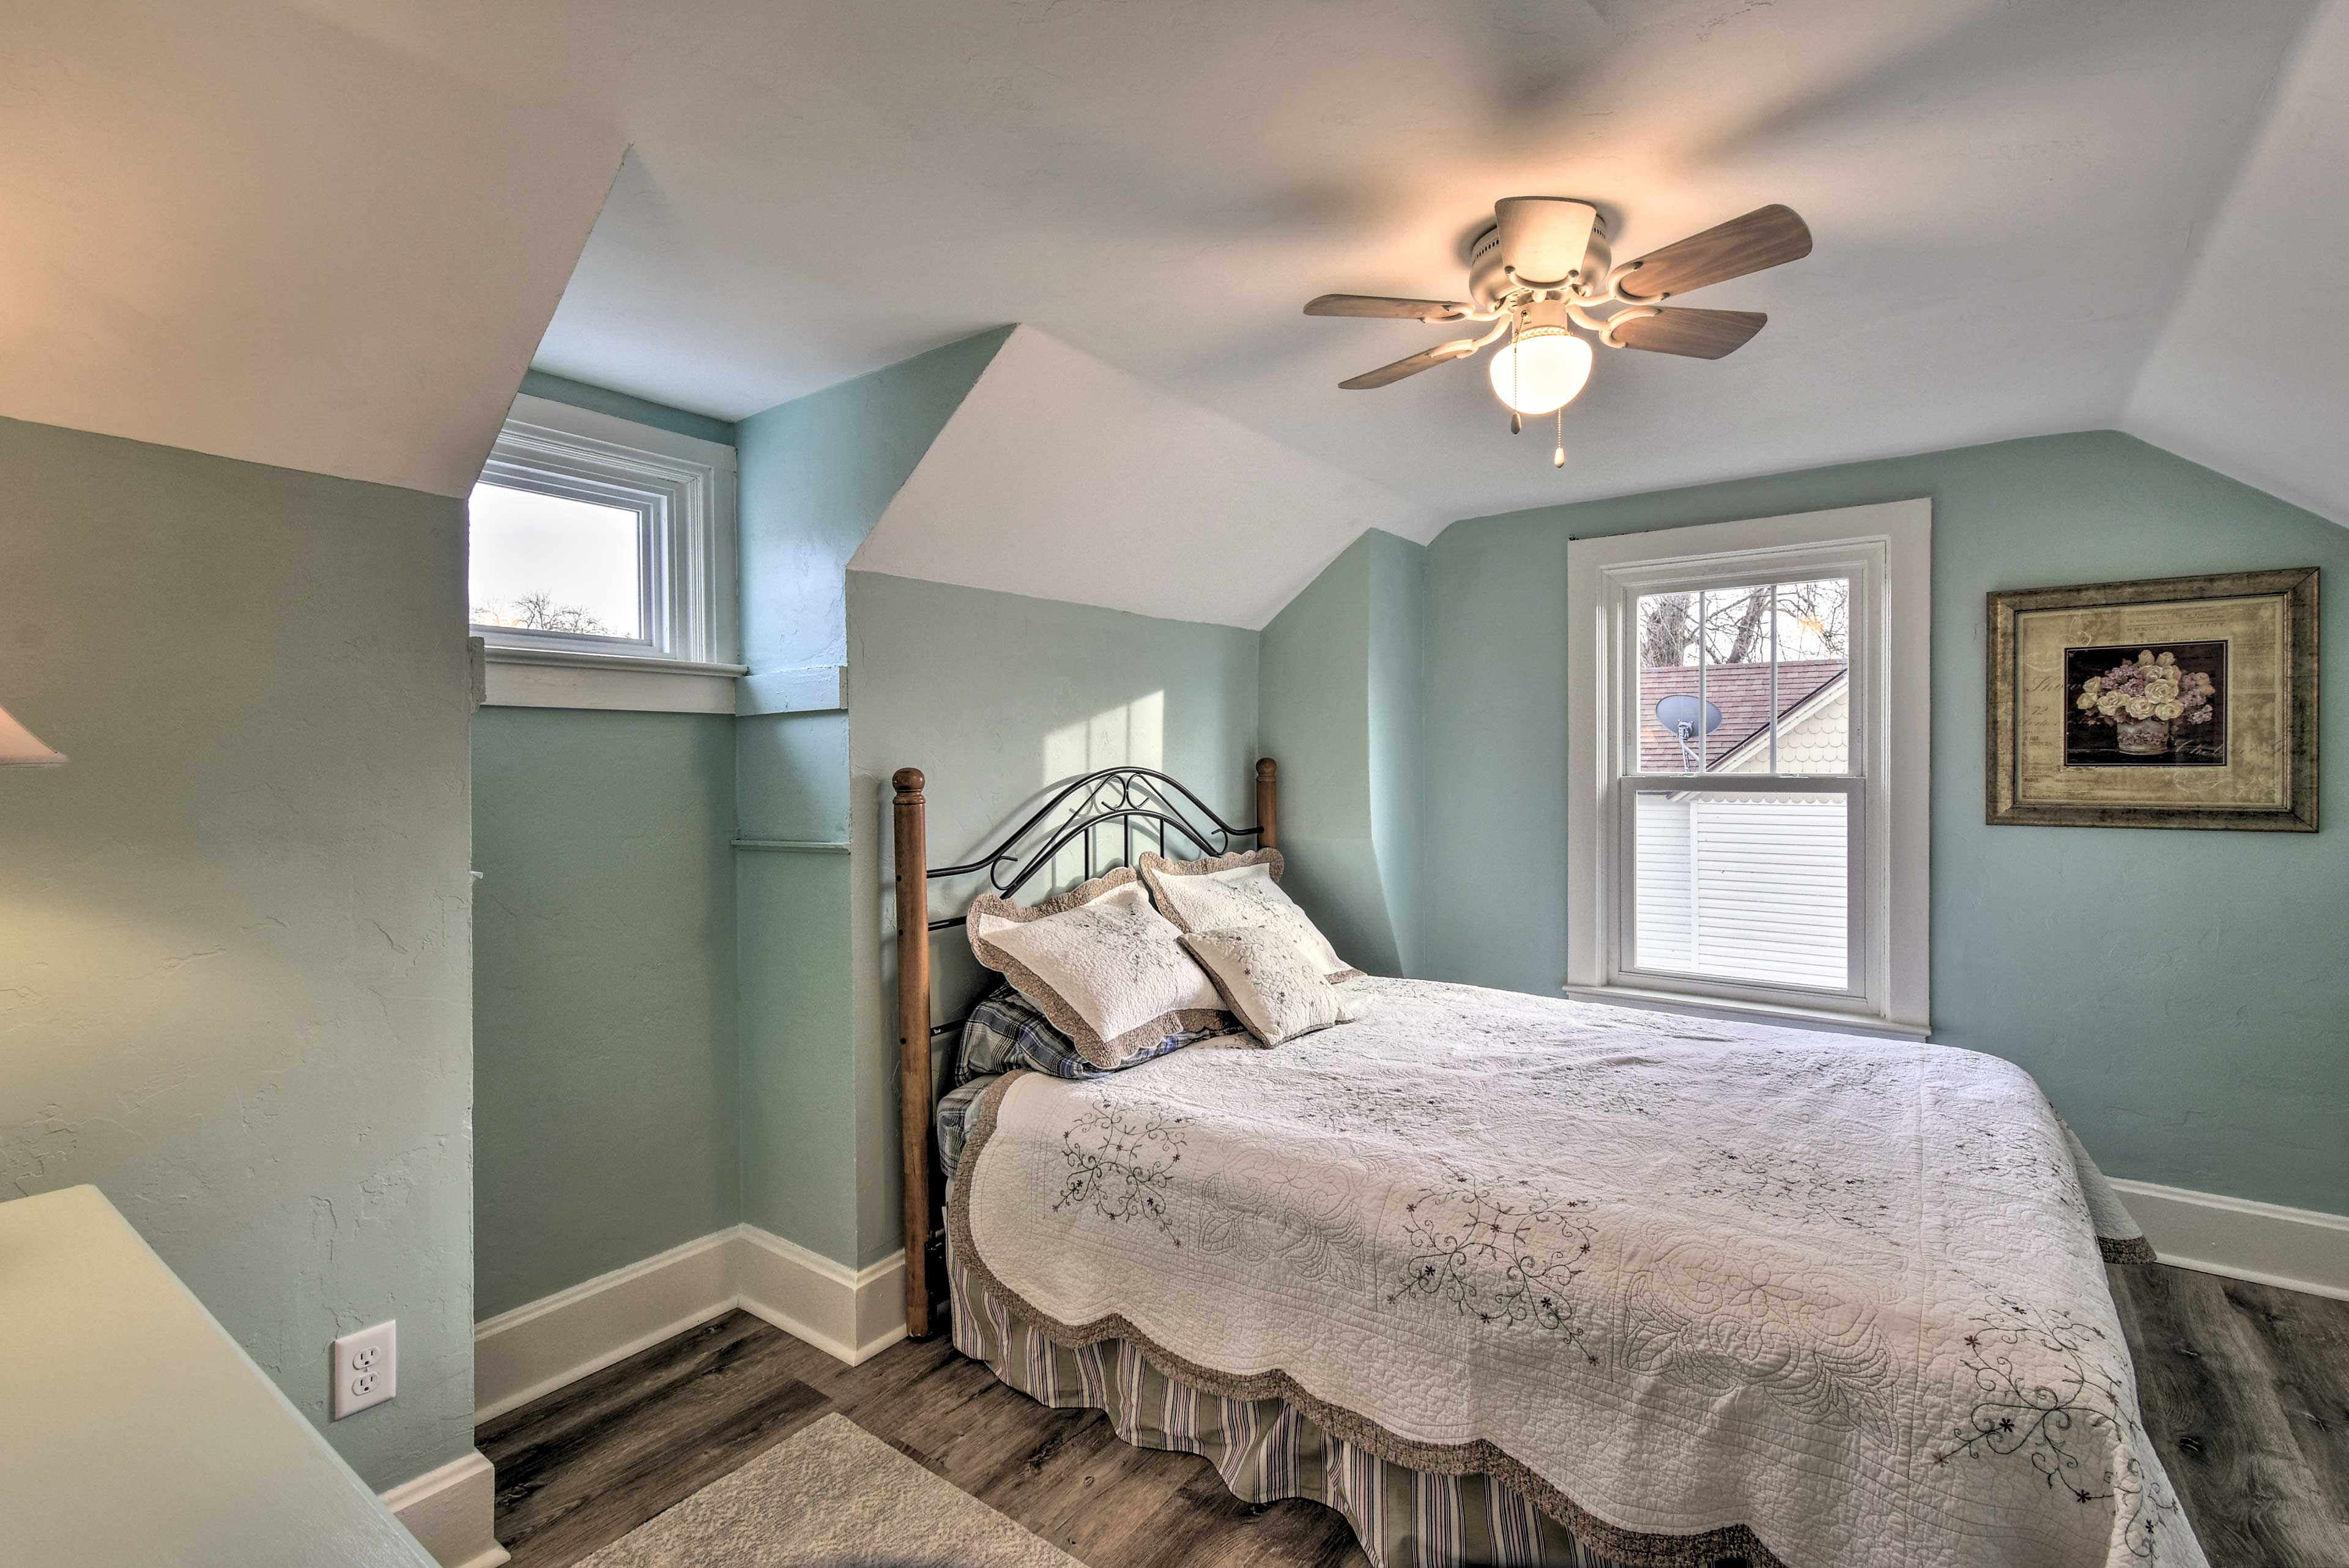 You'll wake up well-rested in this queen bed.